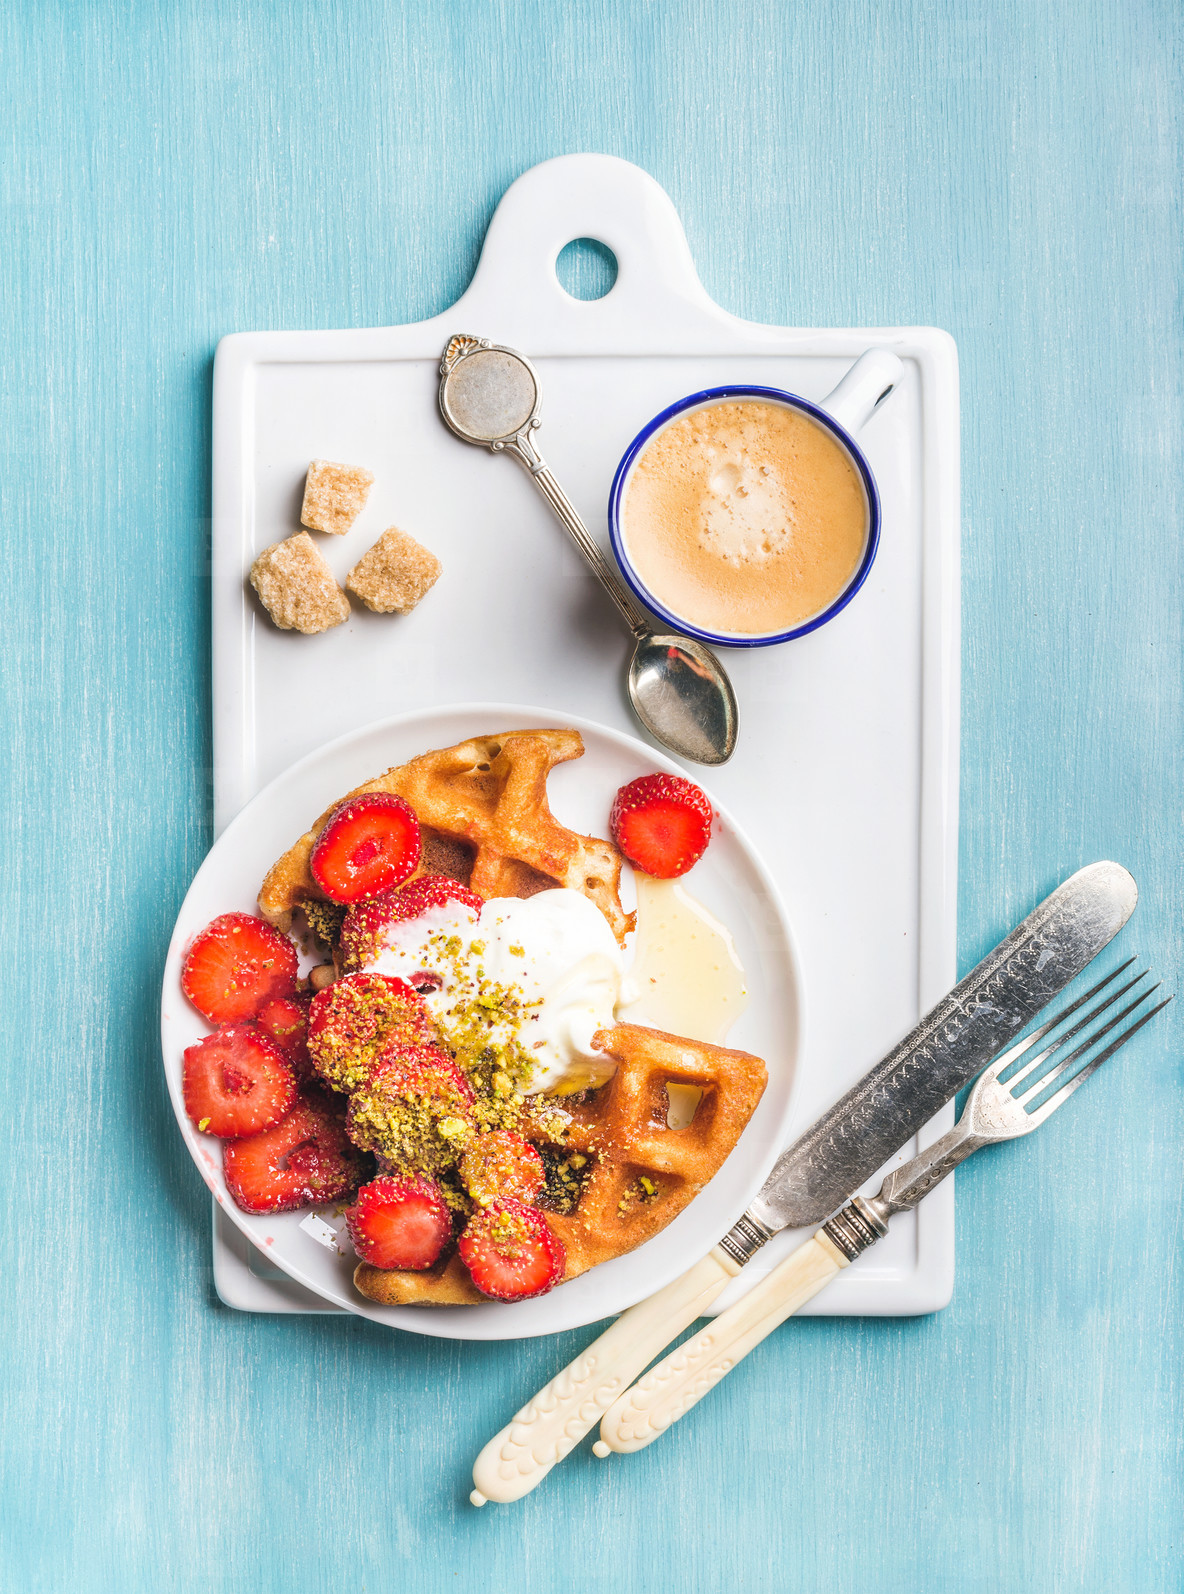 Breakfast set  Warm homemade belgium waffles with whipped cream  strawberry  maple syrup  crushed pistachios  cup of espresso and brown sugar on white ceramic board over blue painted wooden background